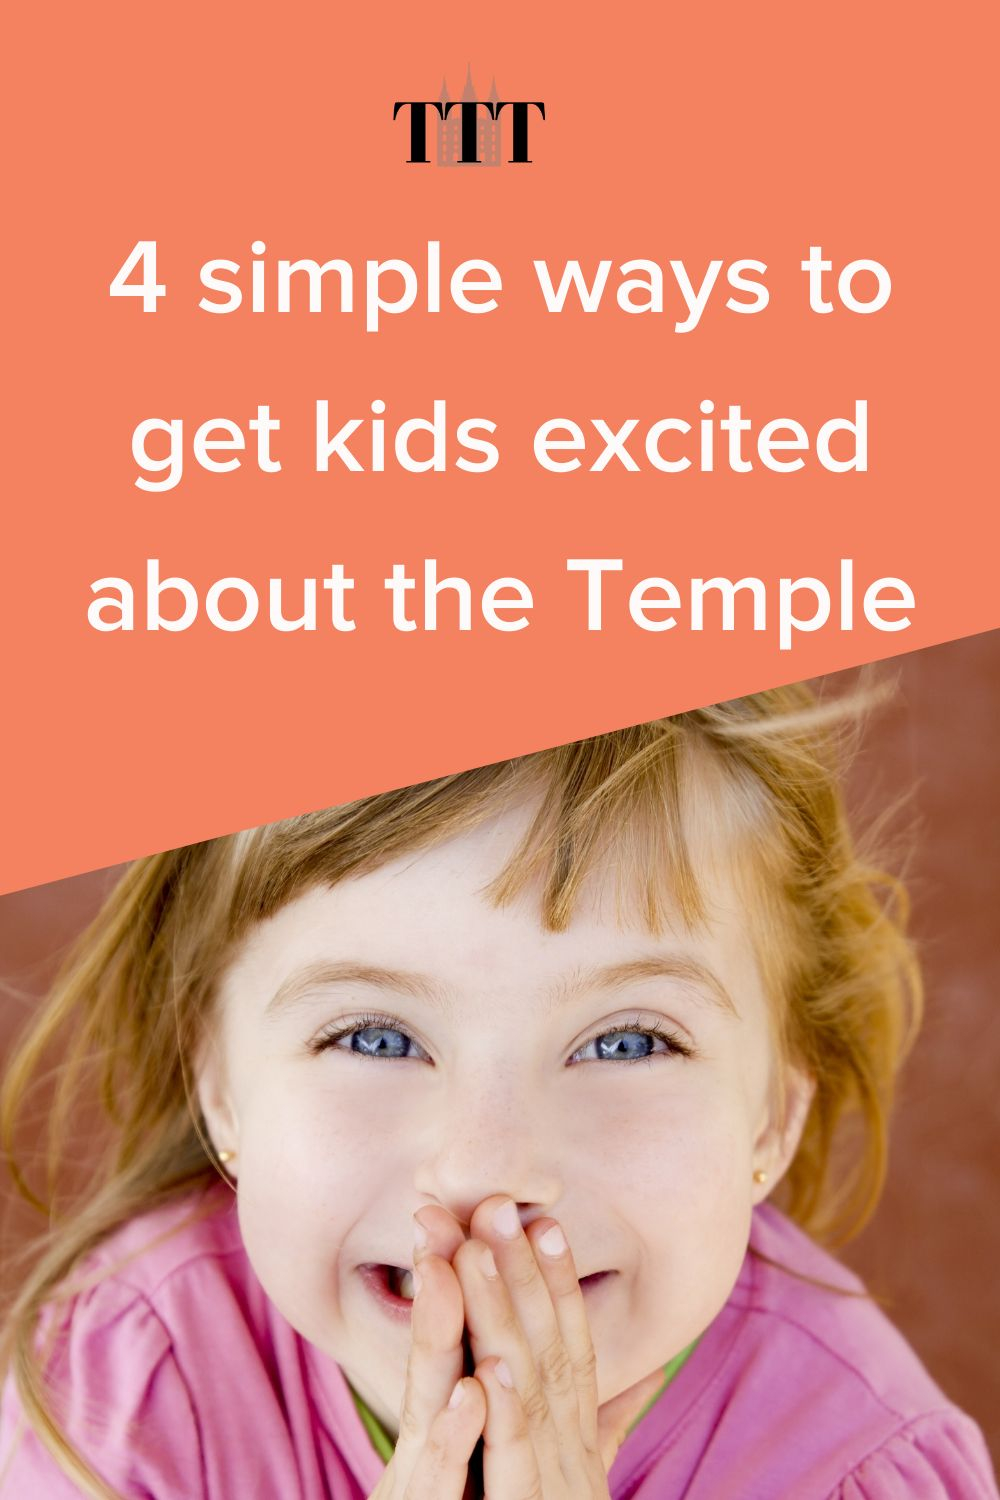 4 simple ways to get kids excited about the Temple